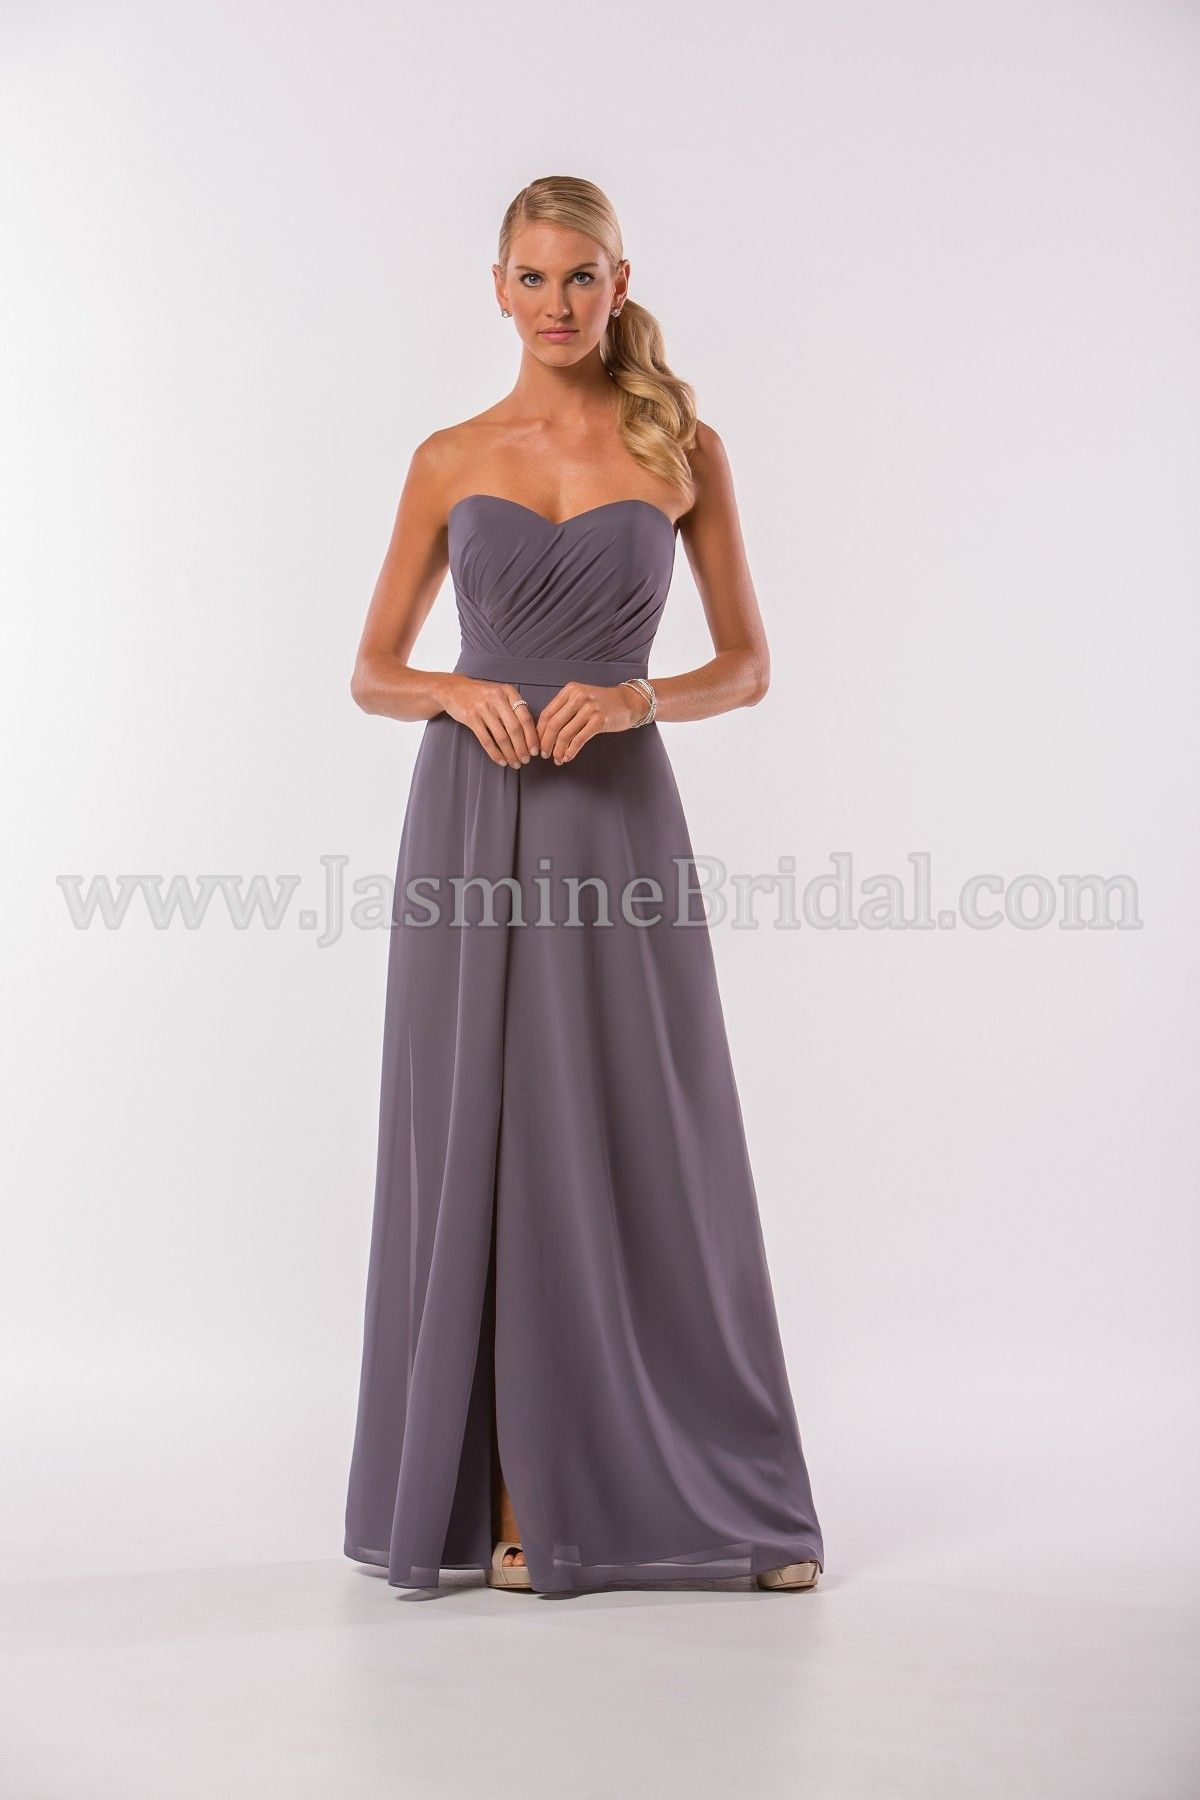 Jasmine bridal bridesmaid dress jasmine bridesmaids style p186004 in jasmine bridal bridesmaid dress jasmine bridesmaids style p186004 in iron ombrellifo Images